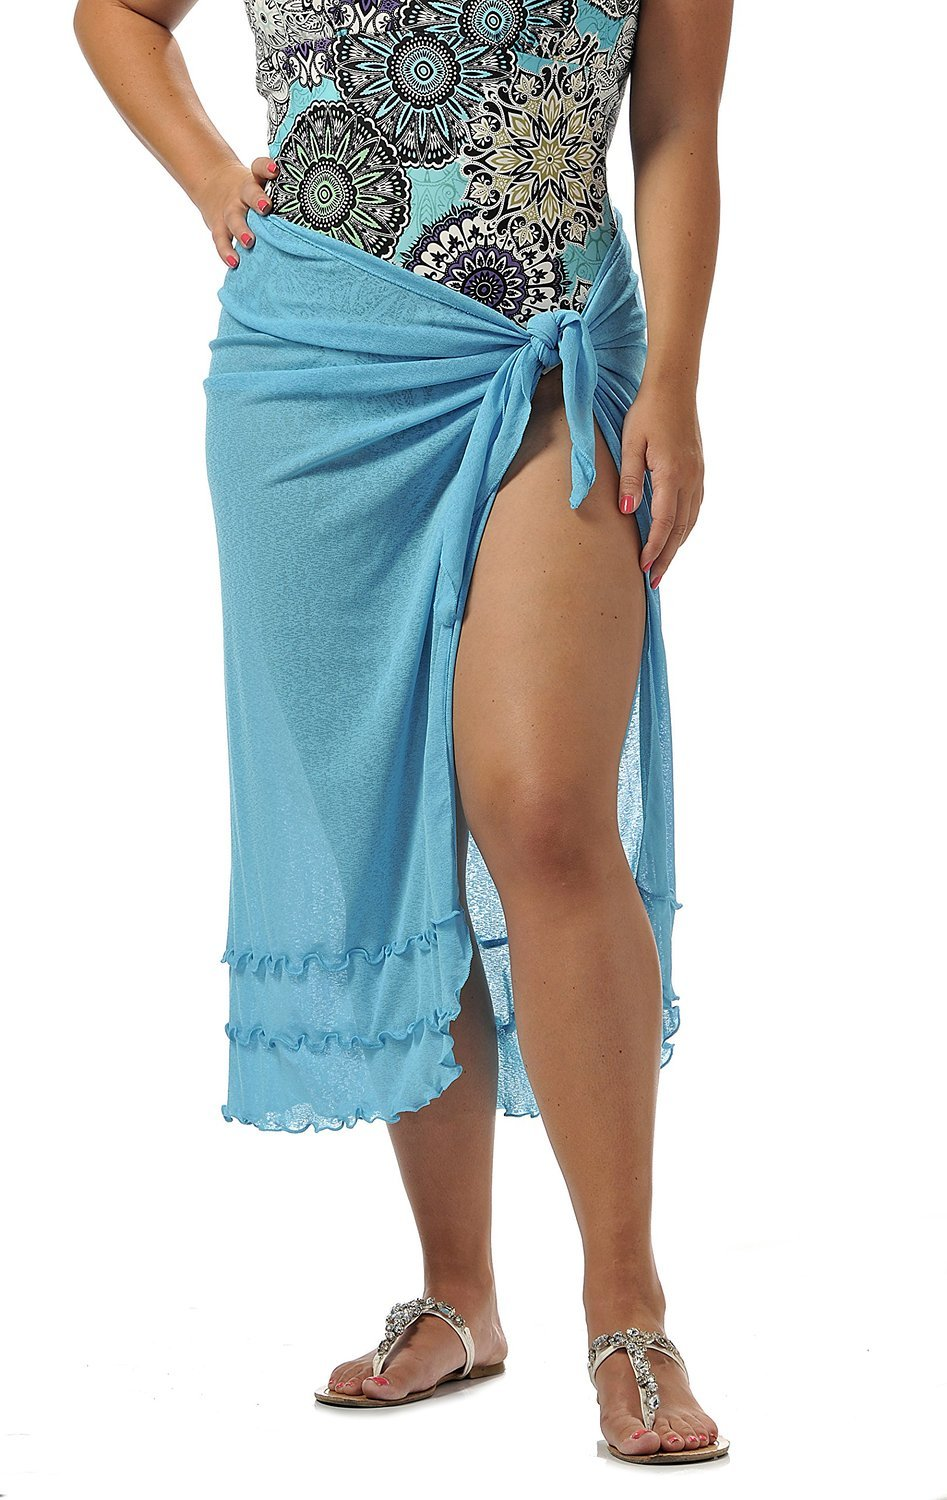 Rapz long knit sarong, one size, 3 colours